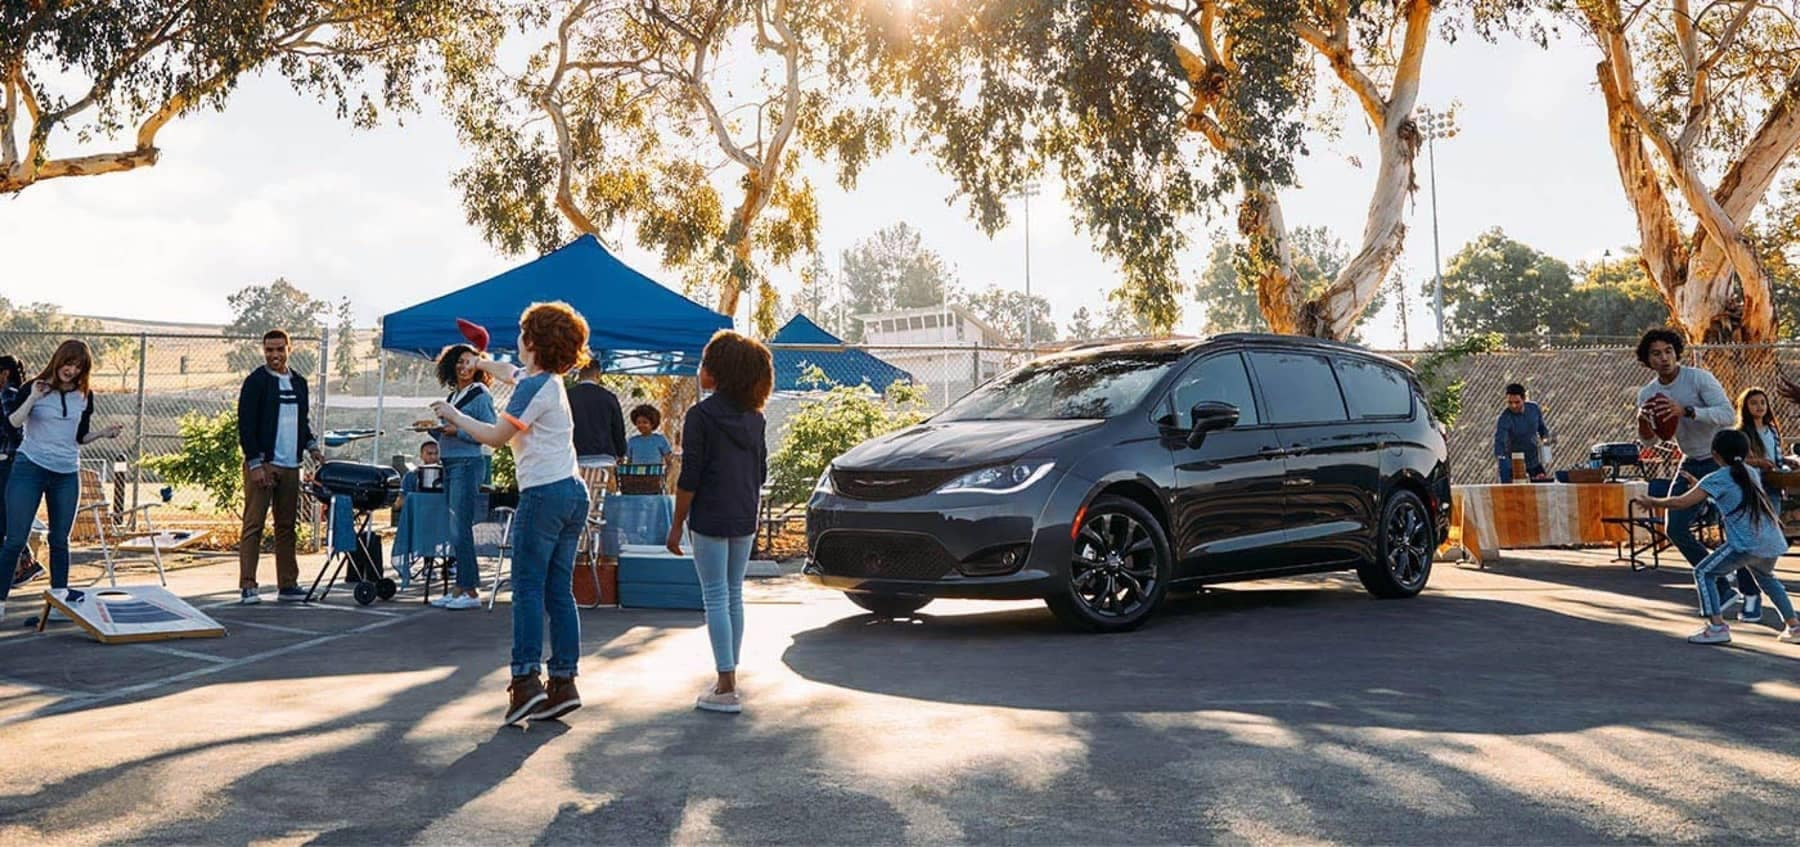 2020 Chrysler Pacifica in parking lot with tailgate party